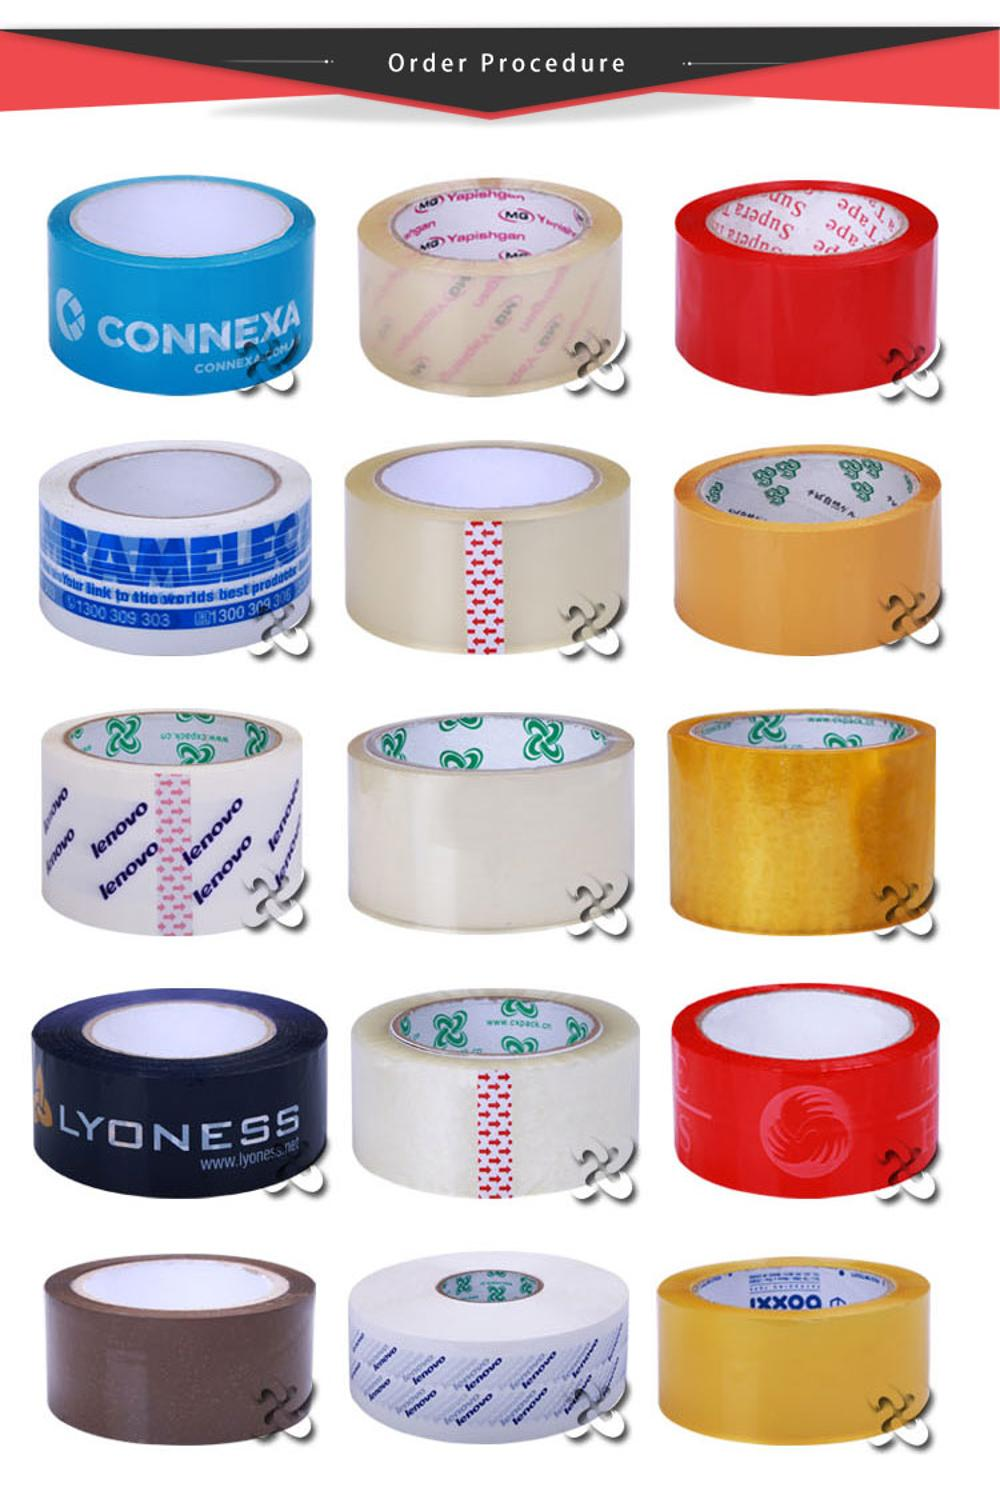 Low Noise Sealing Tapes for Sale